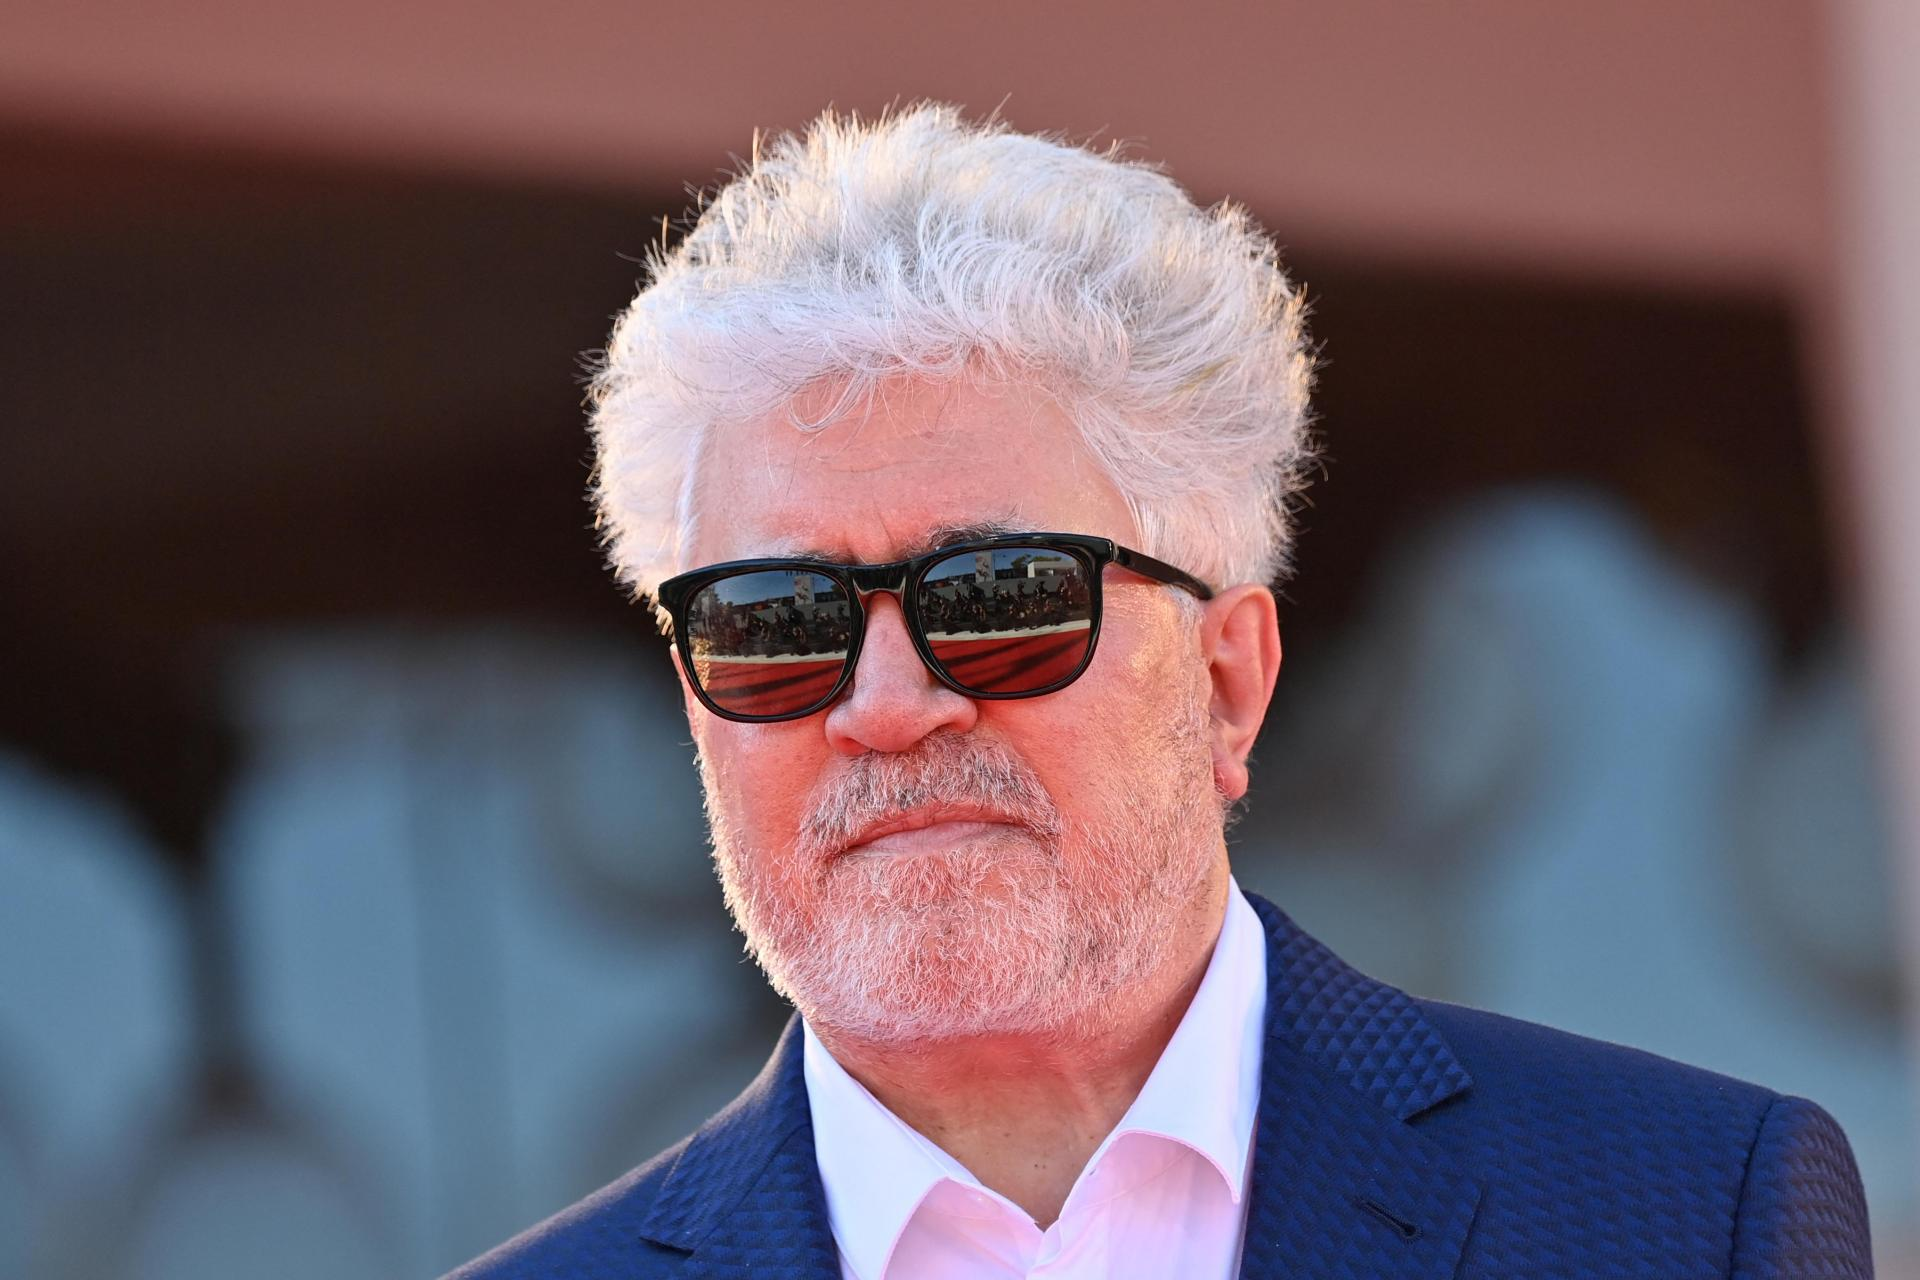 Spanish director Pedro Almodovar is going to curate one of the temporary galleries dedicated to works of individual filmmakers. Photo: Alberto Pizzoli/AFP